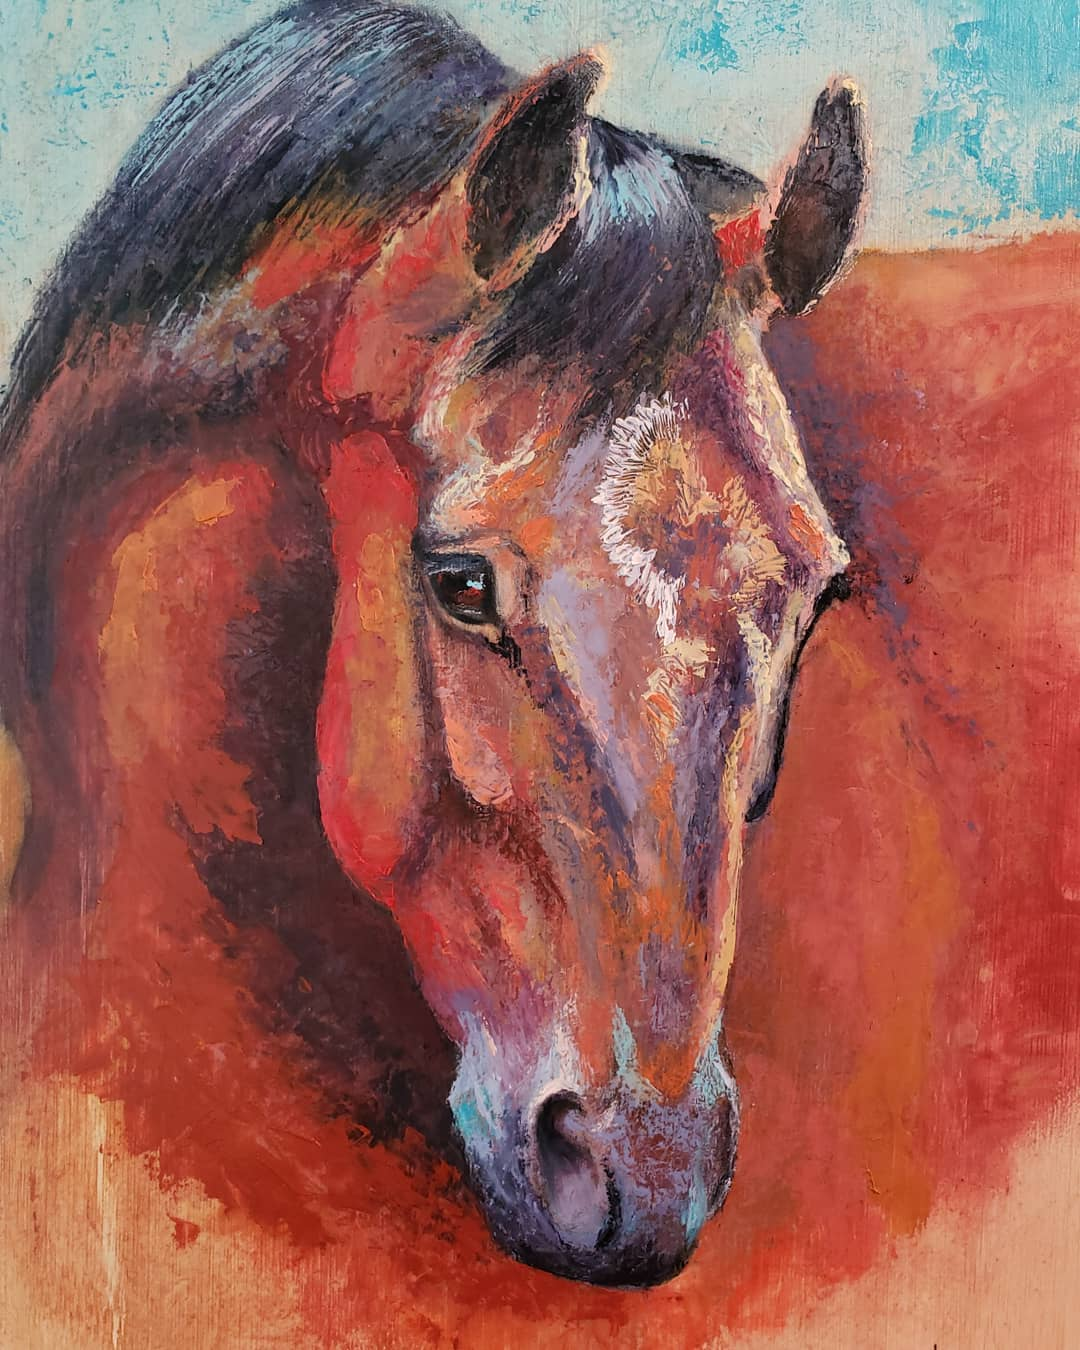 """Close up, Horse portrait. """"Curious"""", mixed media on Bamboo Cutting Board, 10"""" x 15"""", Copyright Renee Forth-Fukumoto"""